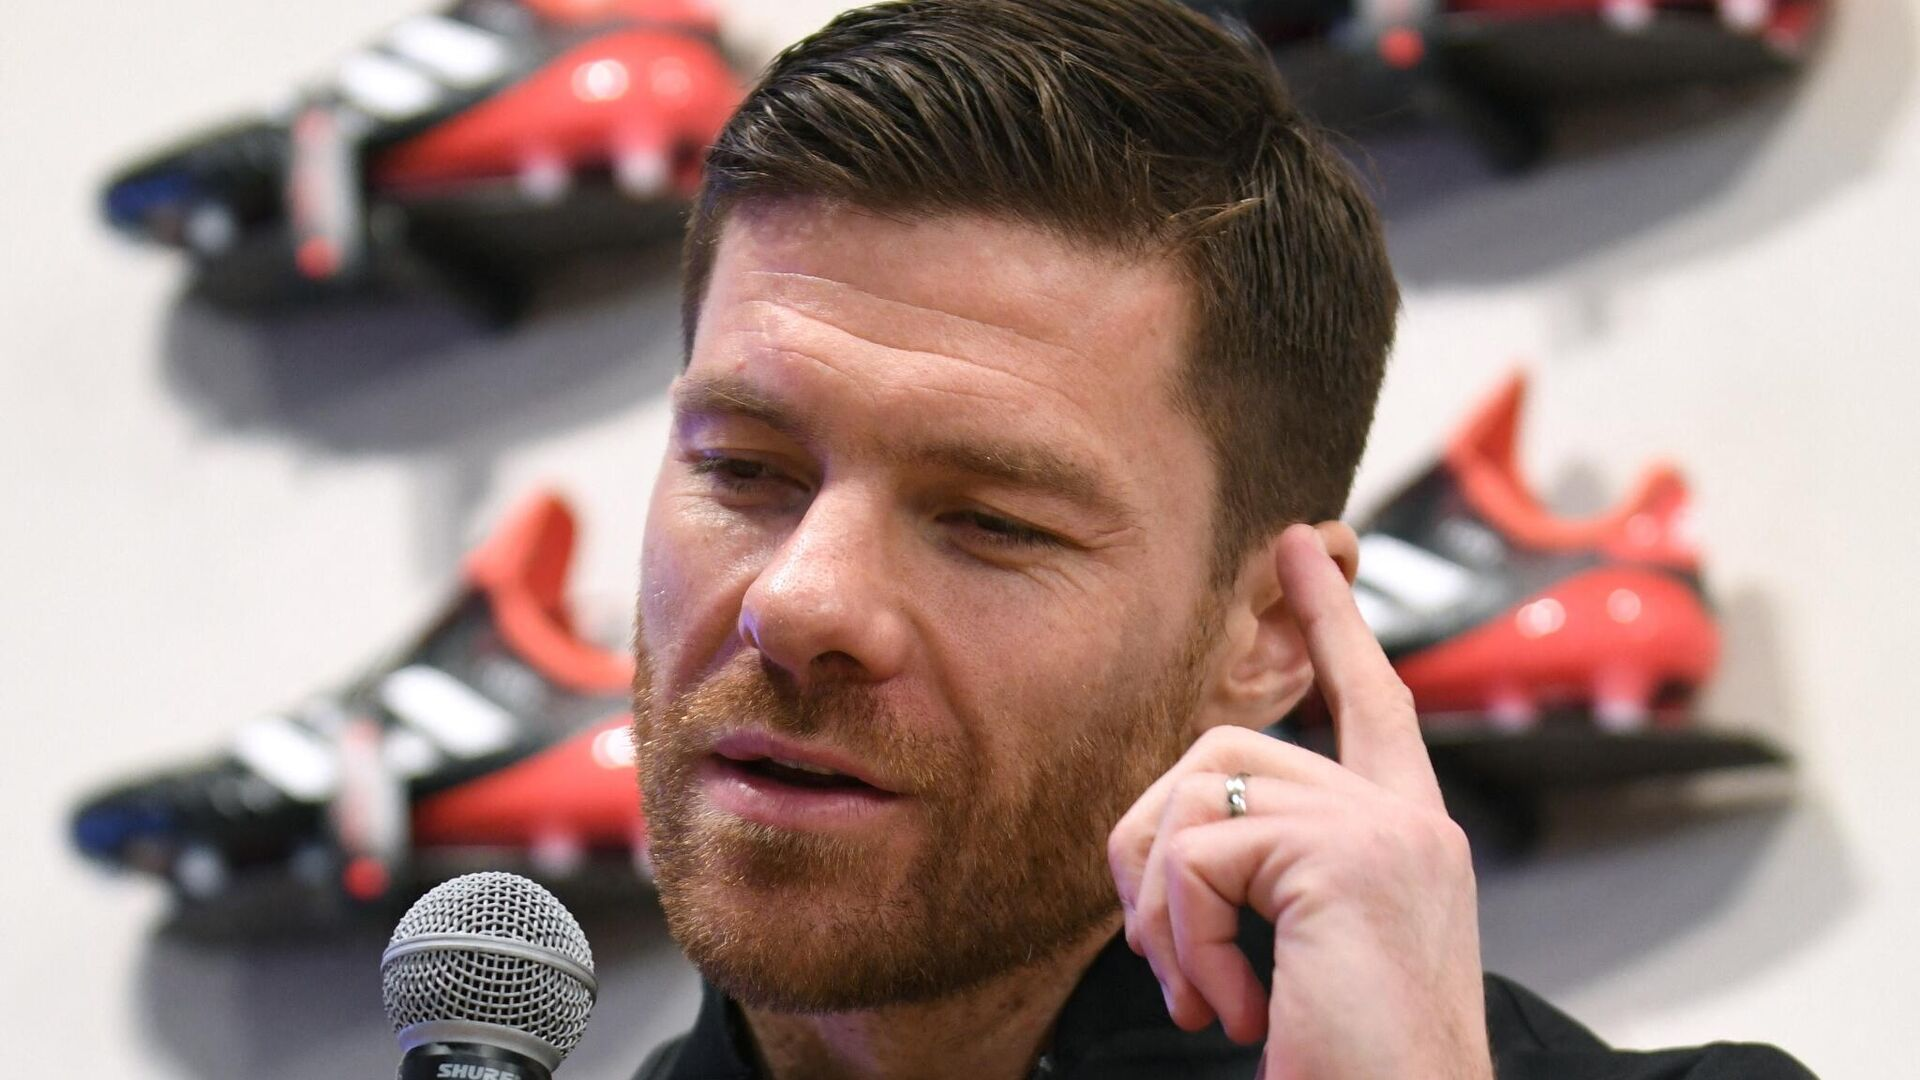 Spanish former footballer Xabier Alonso gestures as he answers questions during a talk session produced by Adidas Japan in Tokyo on January 30, 2018. - Alonso is supervising the team TANGO SQUAD of the football league TANGO LEAGUE sponsored by Adidas. (Photo by Kazuhiro NOGI / AFP) - РИА Новости, 1920, 09.04.2021